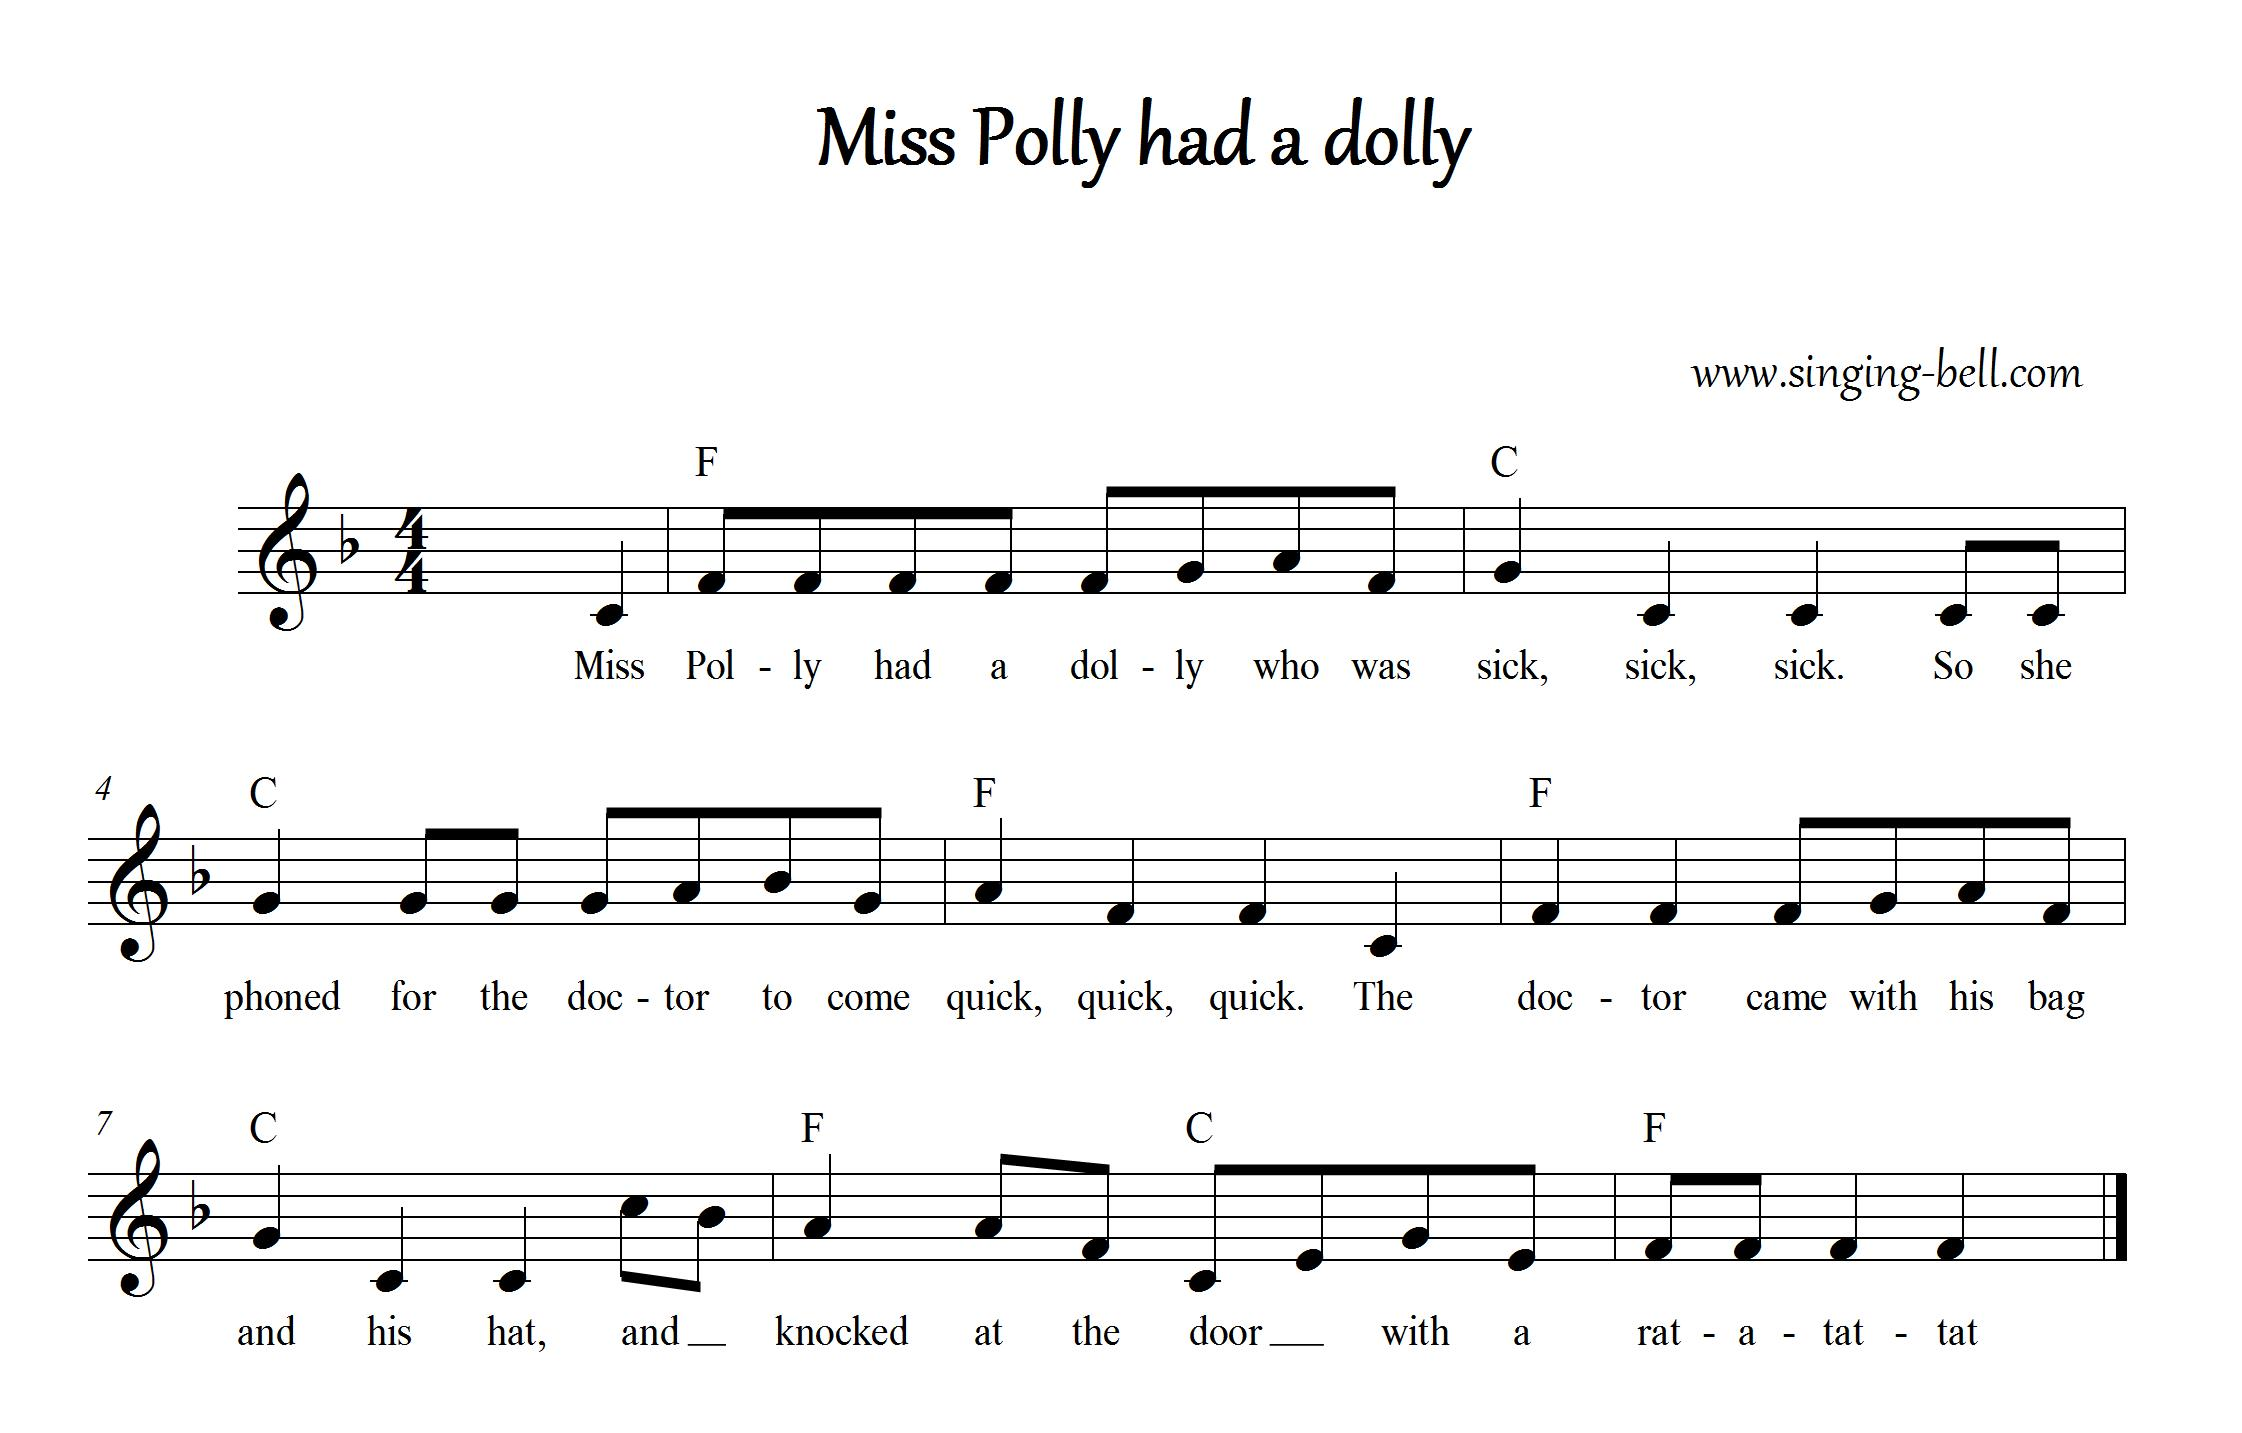 miss-polly-had-a-dolly_singing-bell